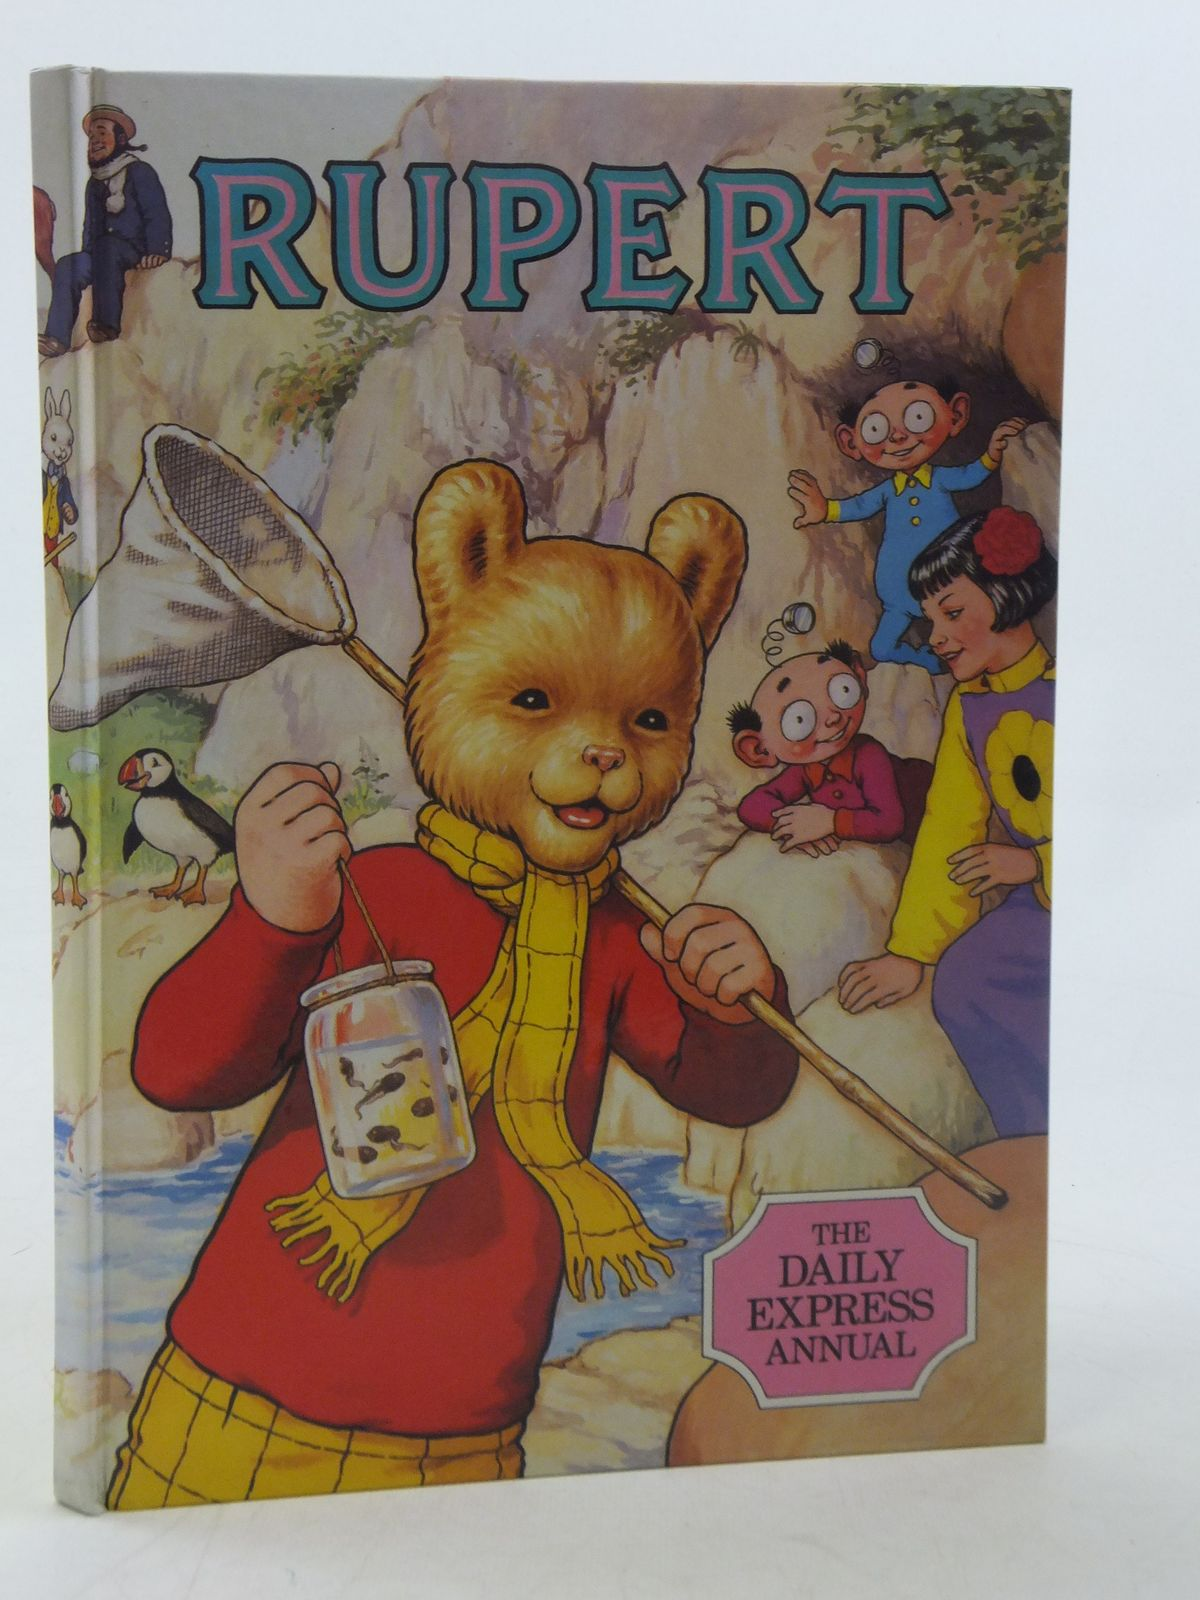 Photo of RUPERT ANNUAL 1986 illustrated by Harrold, John published by Express Newspapers Ltd. (STOCK CODE: 2117162)  for sale by Stella & Rose's Books